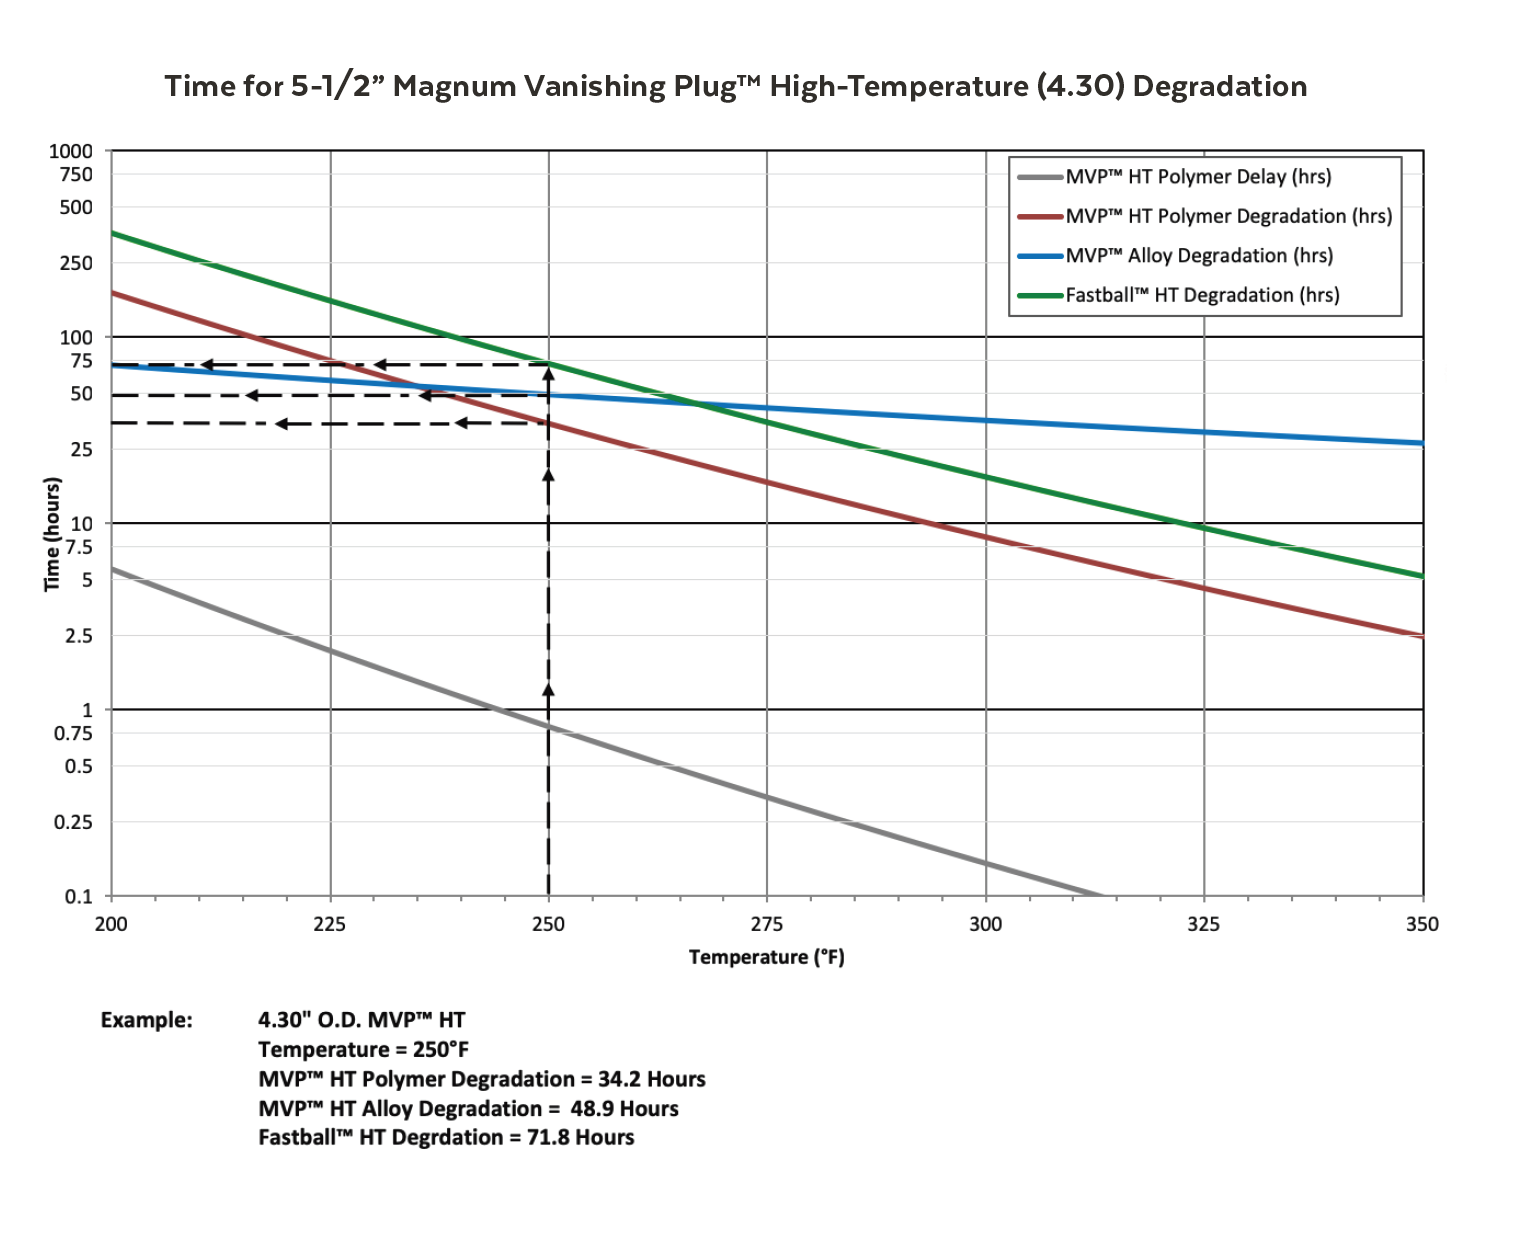 Actual Degradation Rate Will Vary Depending On Downhole Conditions And Flow Back Procedures